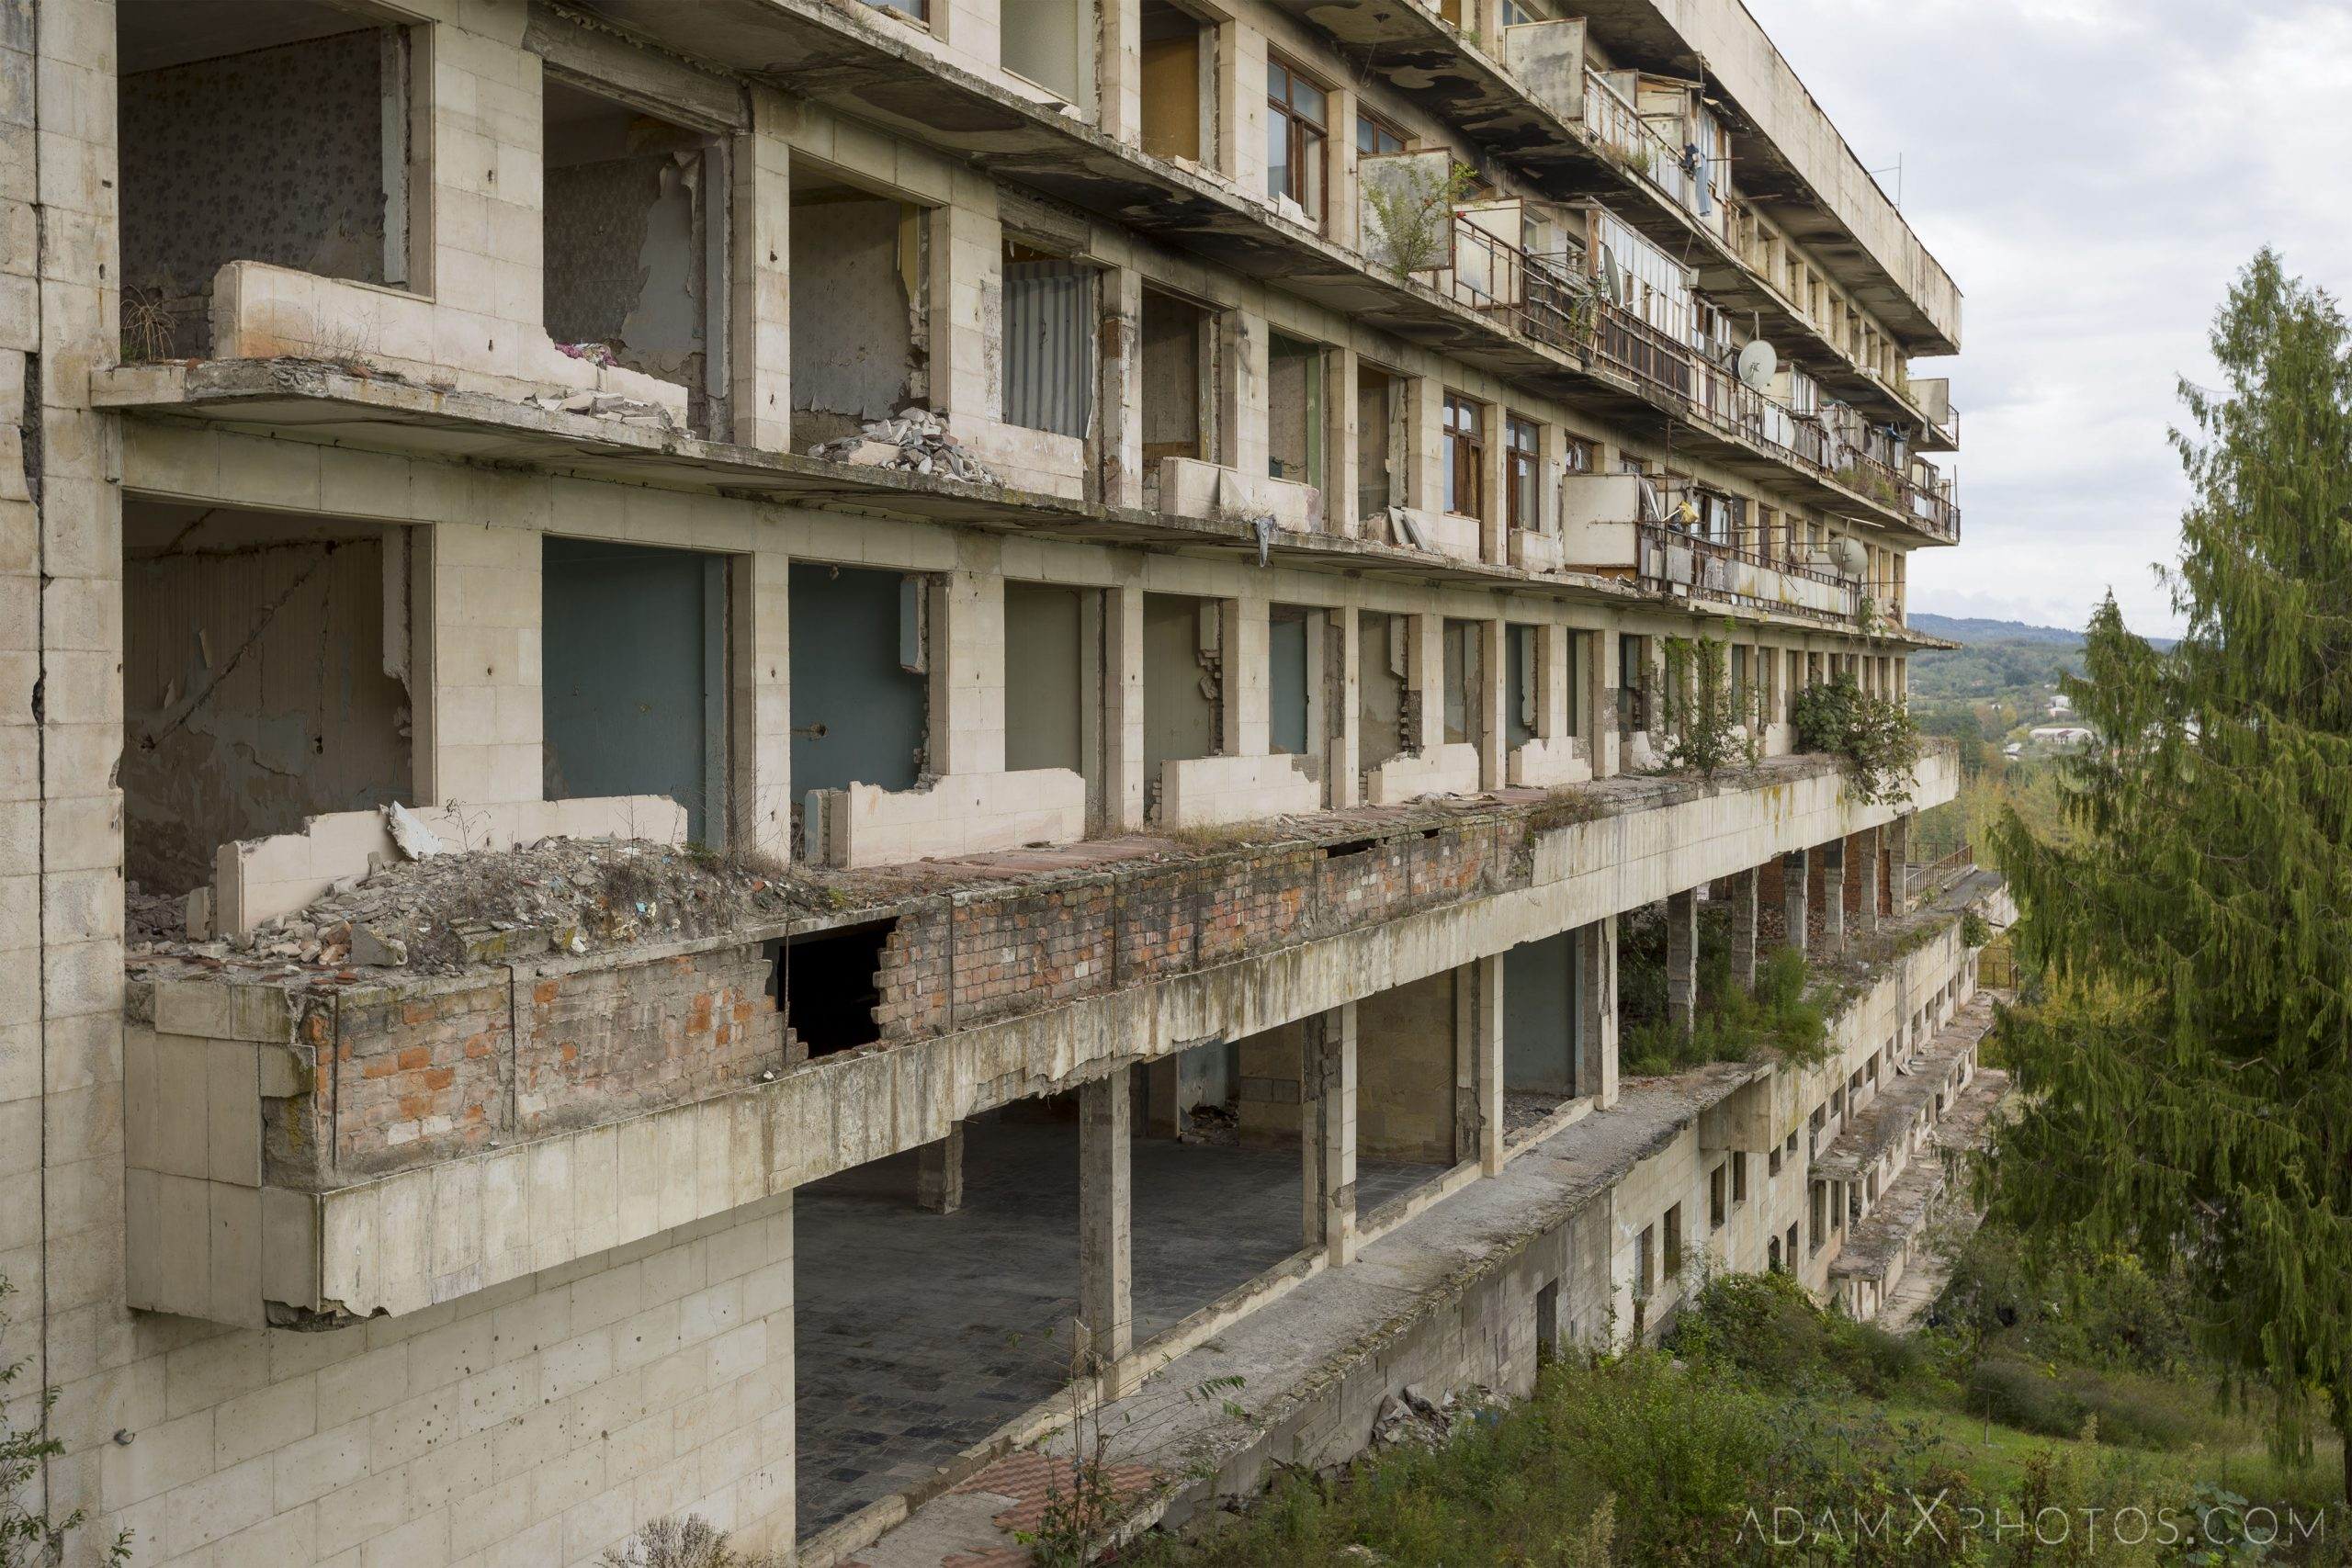 exterior IDPs residents concrete Hotel Sakartvelo Tskaltubo Georgia Adam X Urbex Urban Exploration 2018 Abandoned Access History decay ruins lost forgotten derelict location creepy haunting eerie security